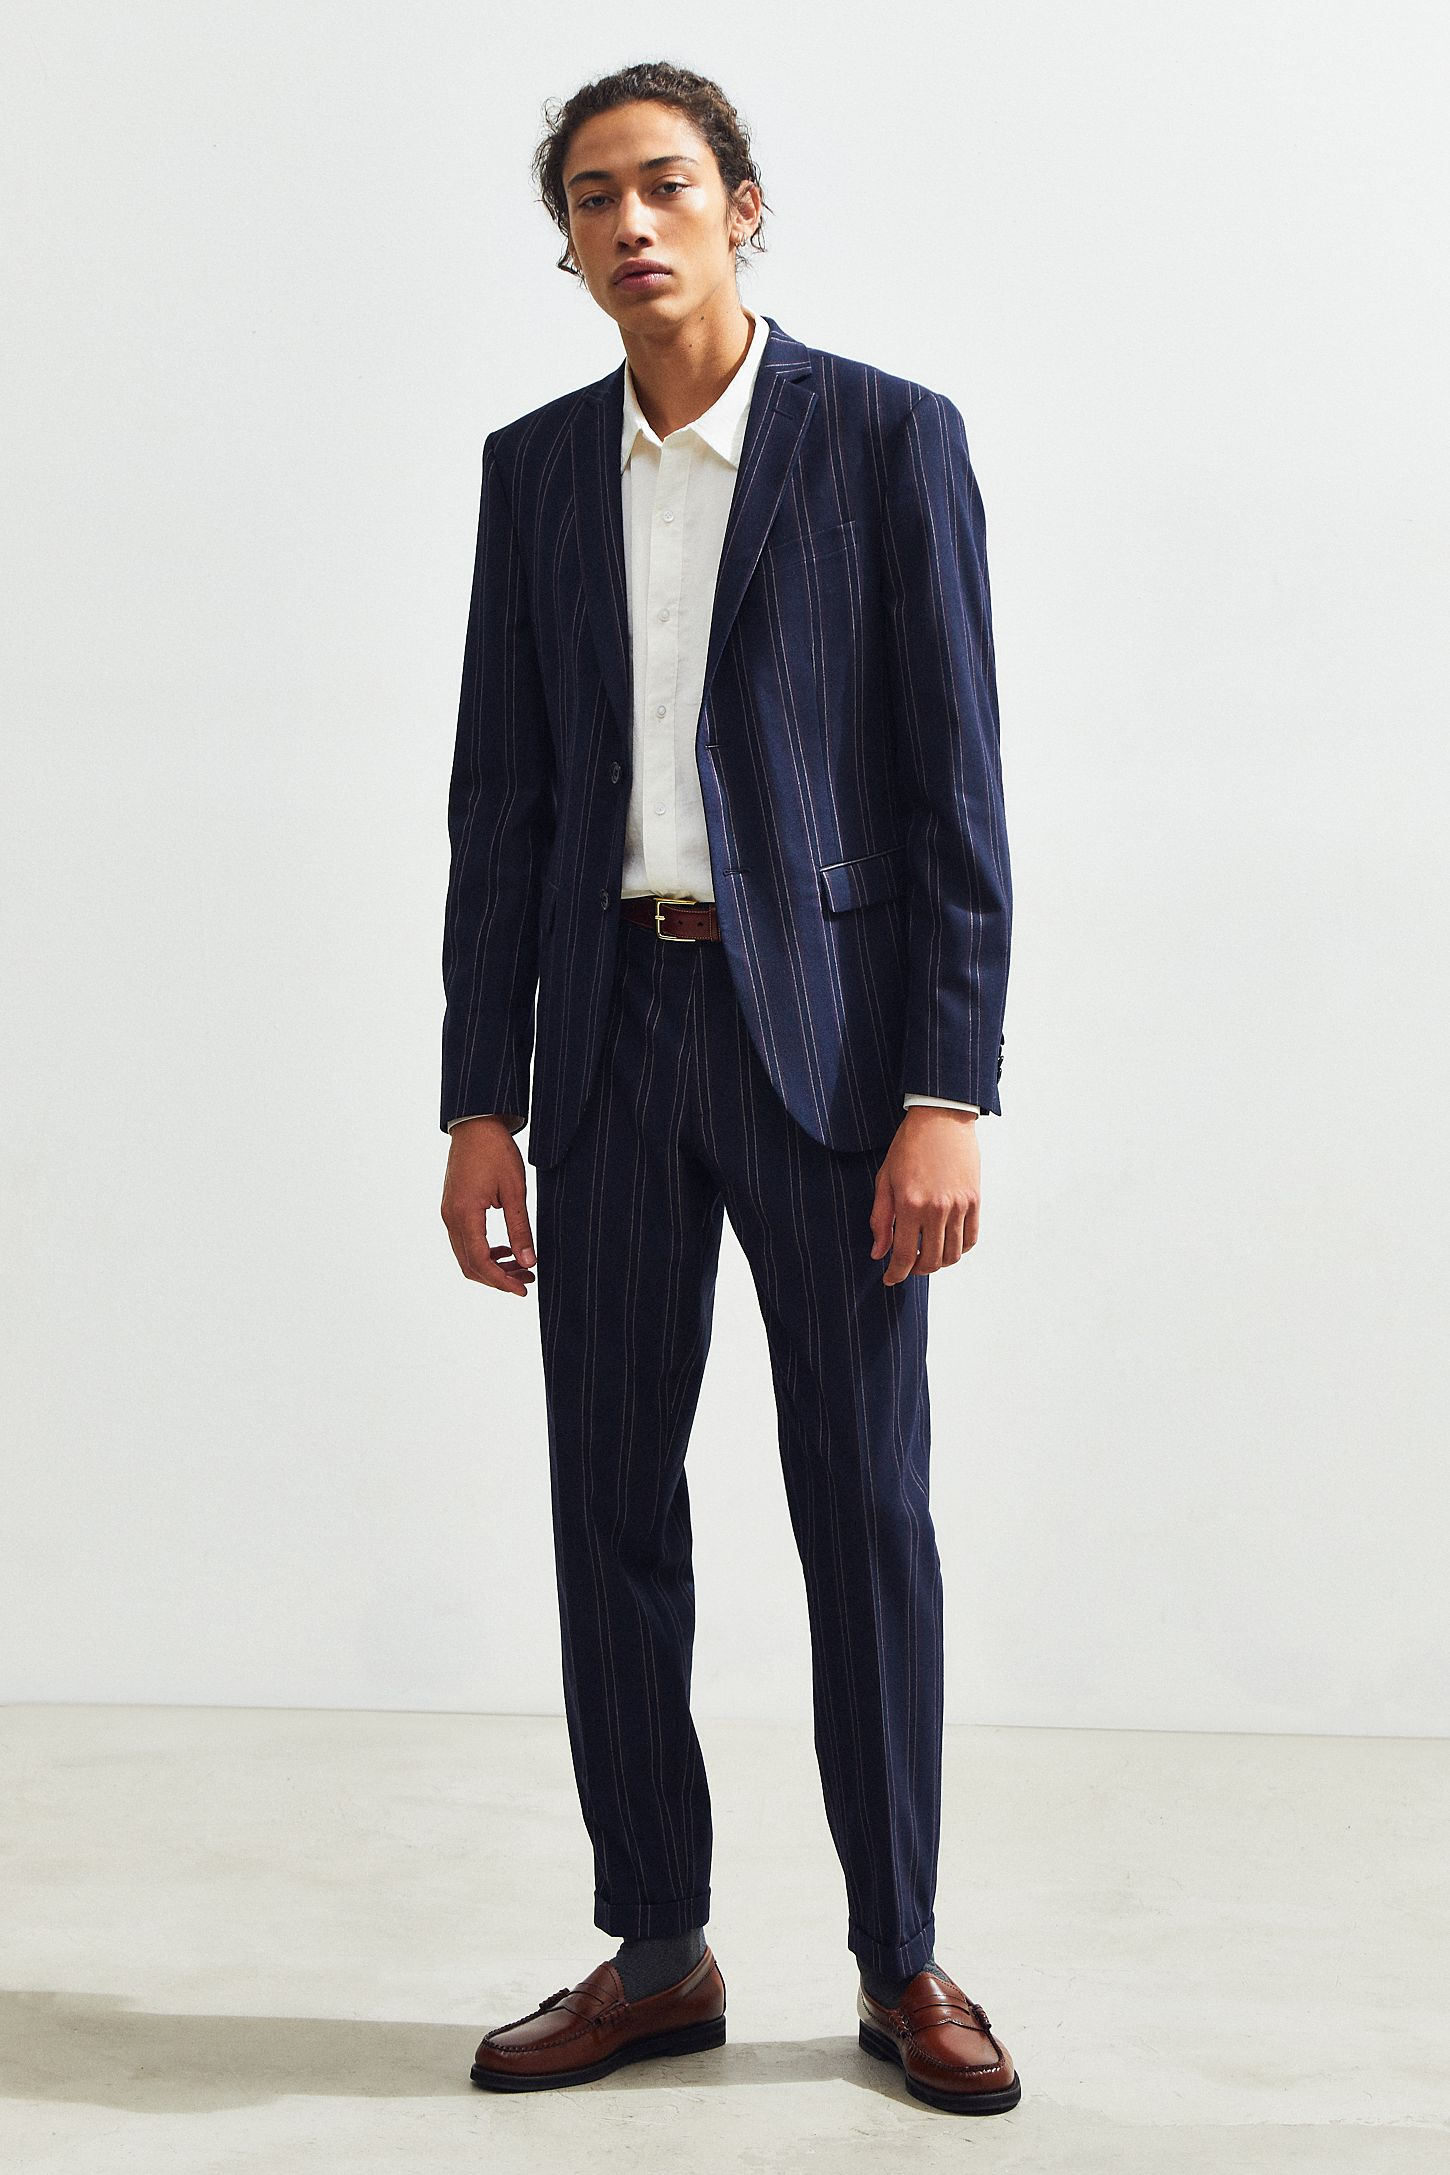 Uo Navy Blue Pinstripe Slim Fit Suit Pant Urban Outfitters